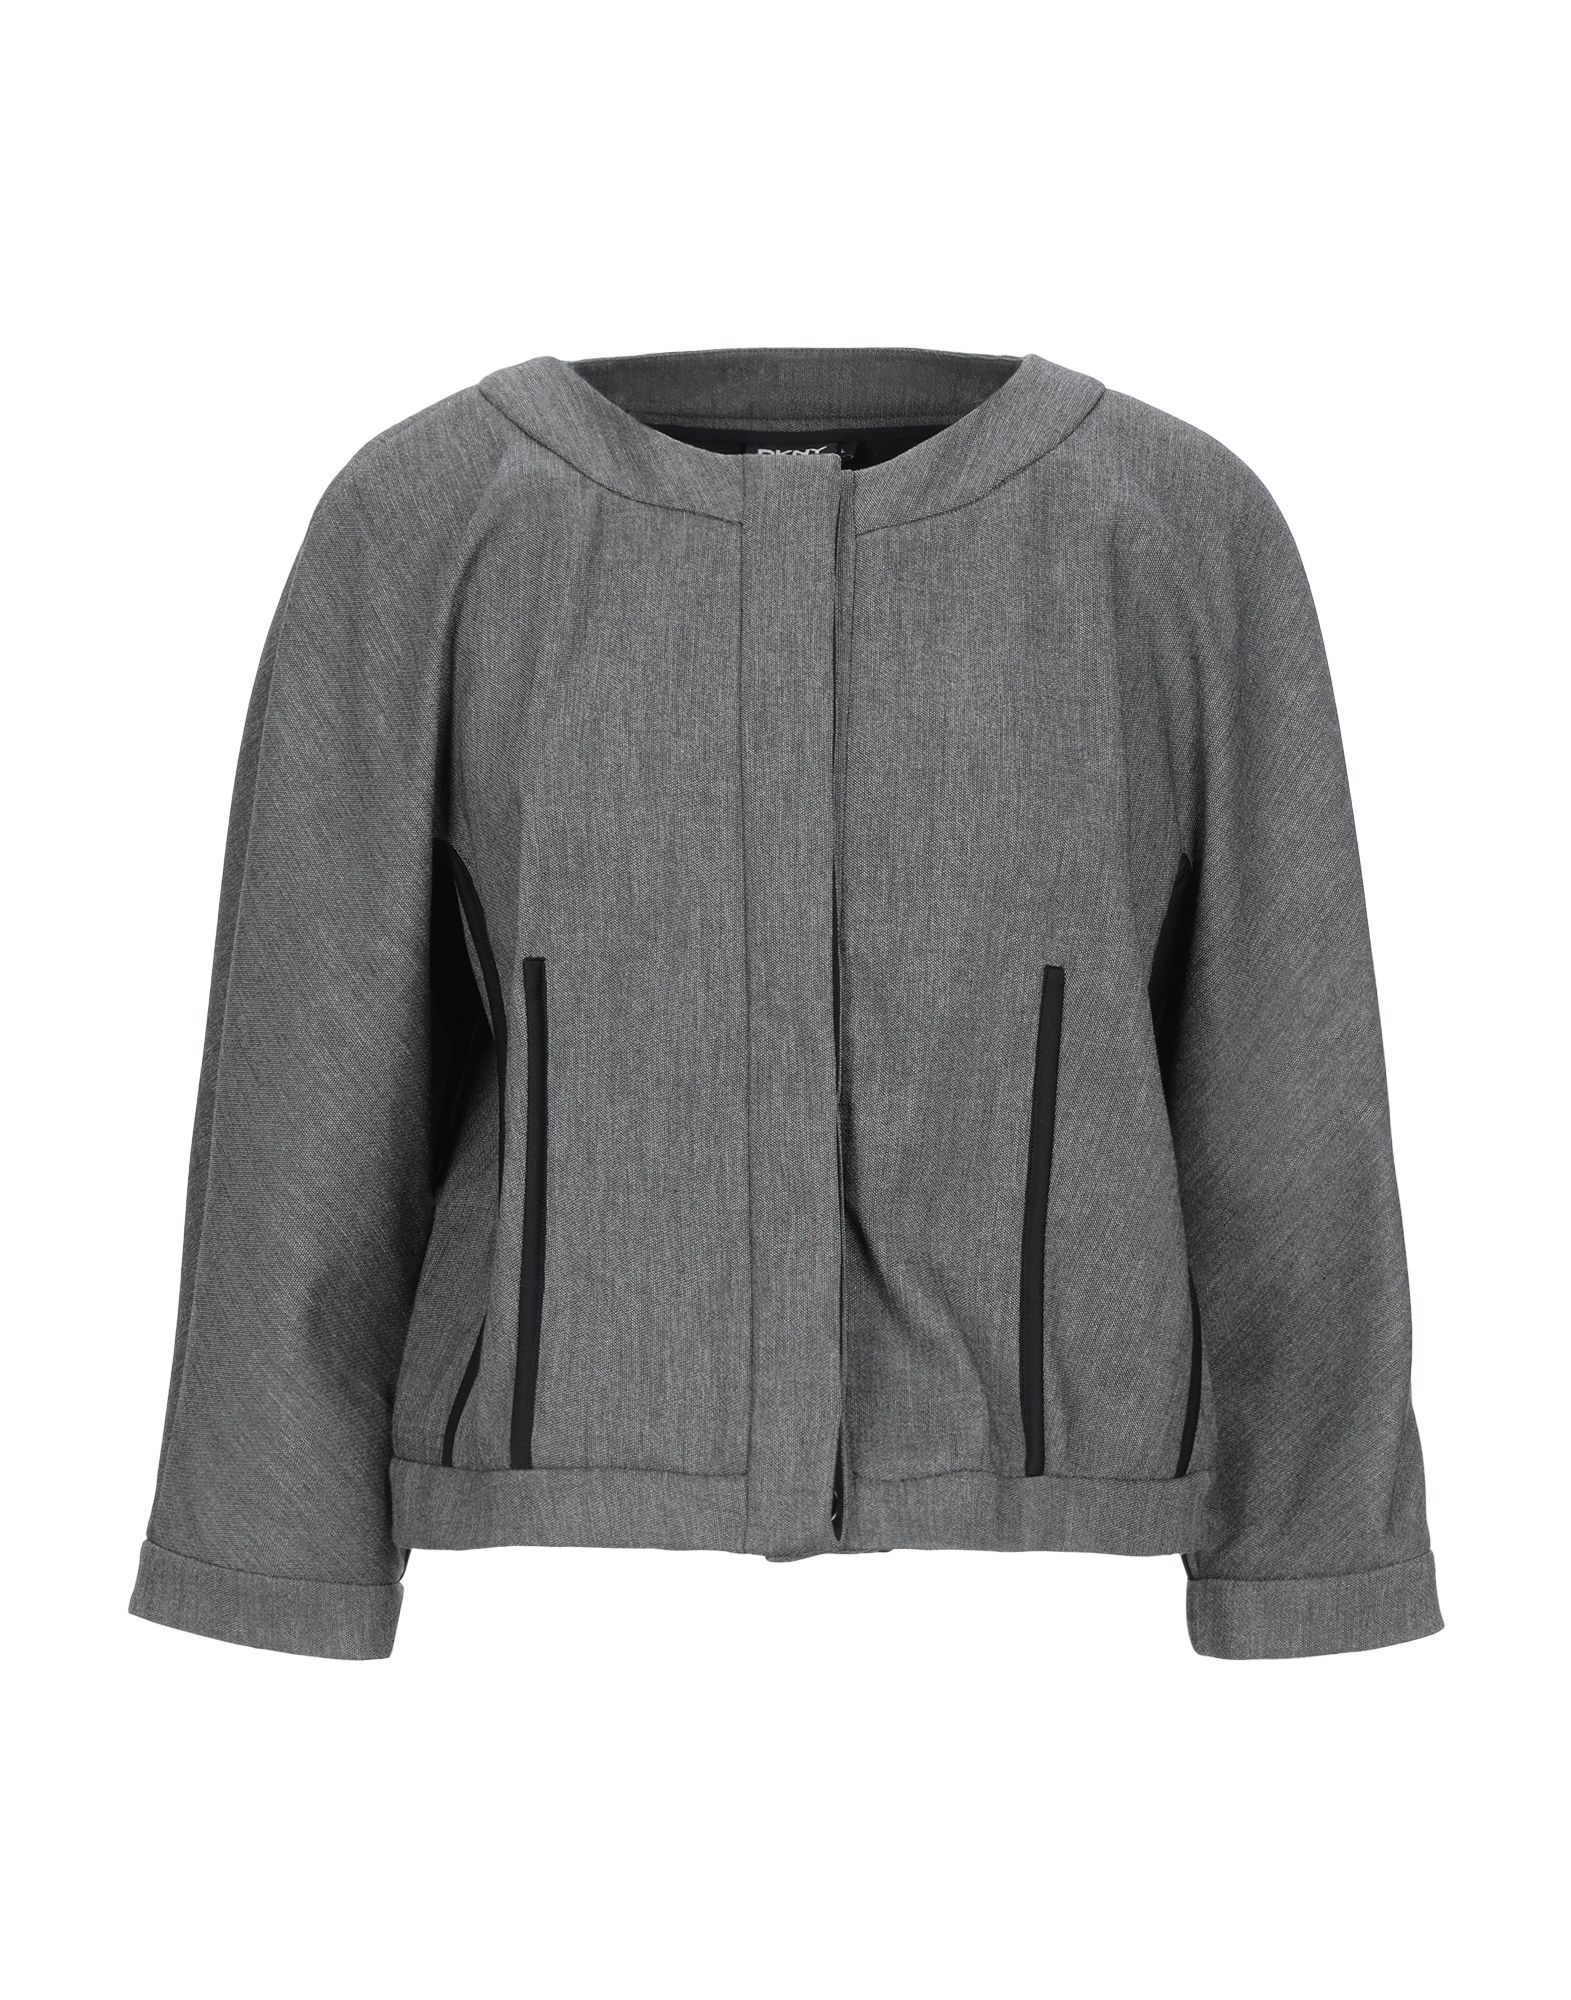 SUITS AND JACKETS Dkny Grey Woman Viscose